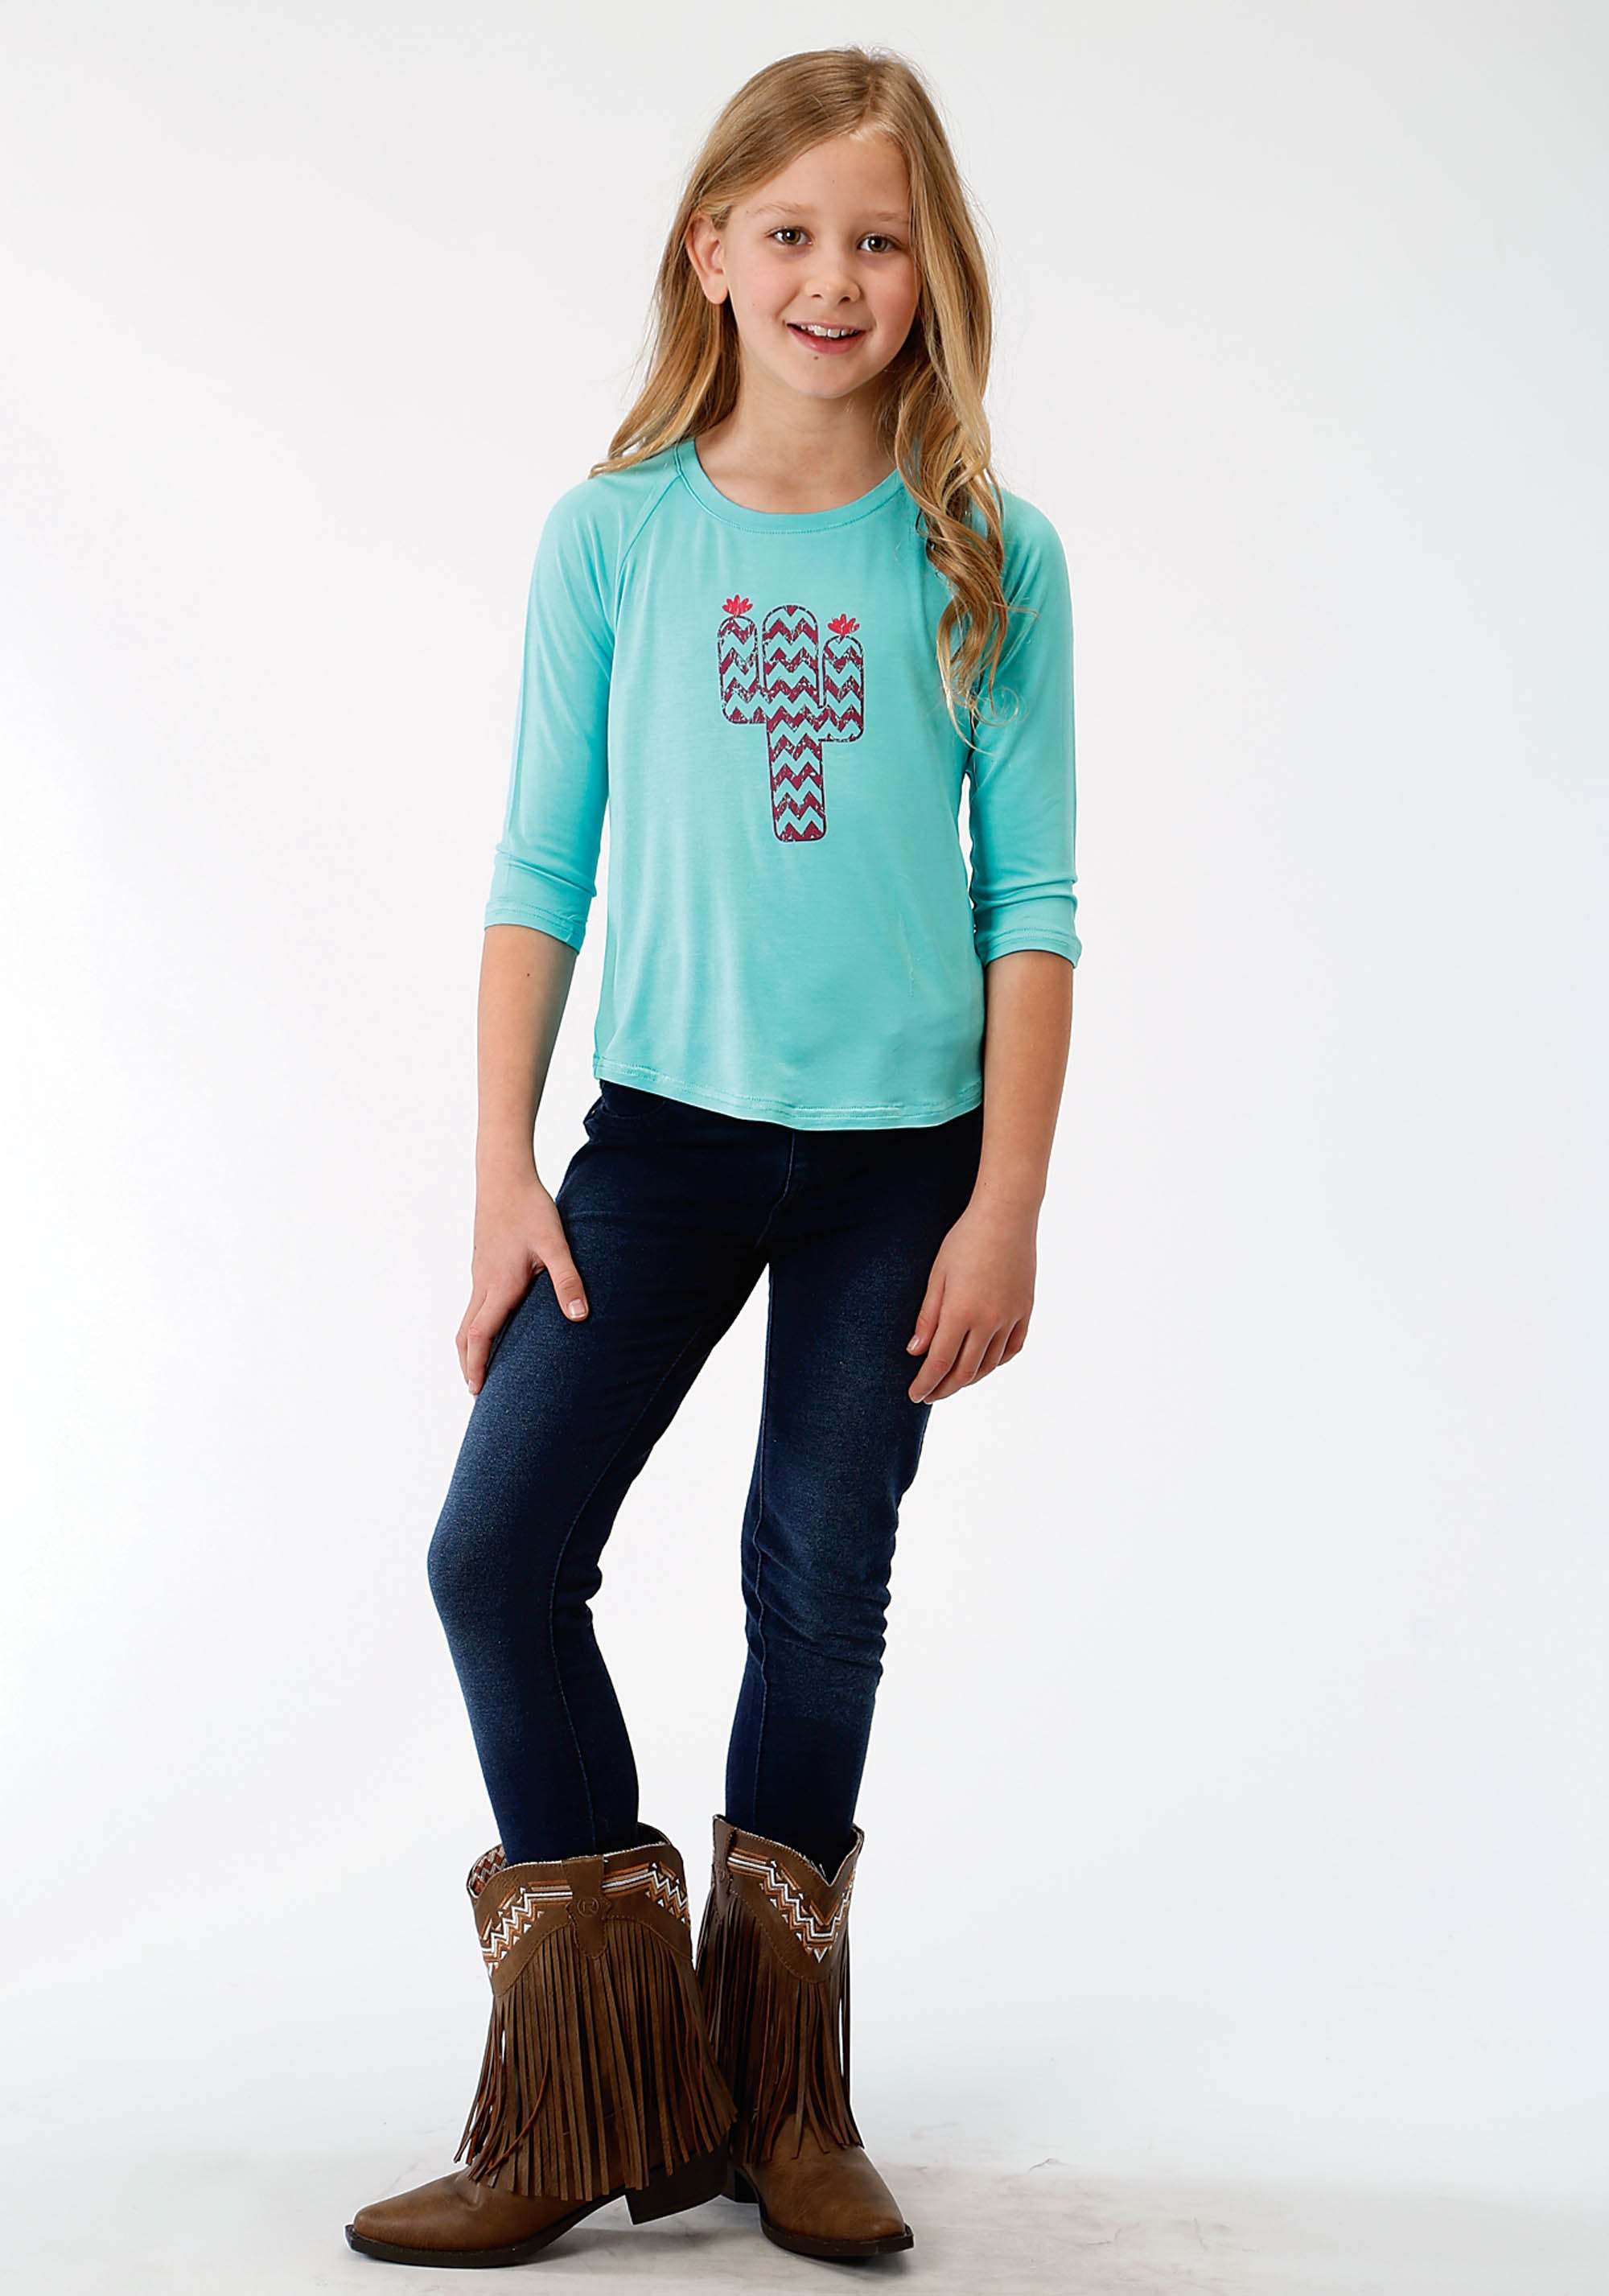 ROPER GIRLS BLUE 3675 POLY RAYON JERSEY SCOOP NECK TEE FIVE STAR GIRLS LONG SLEEVE